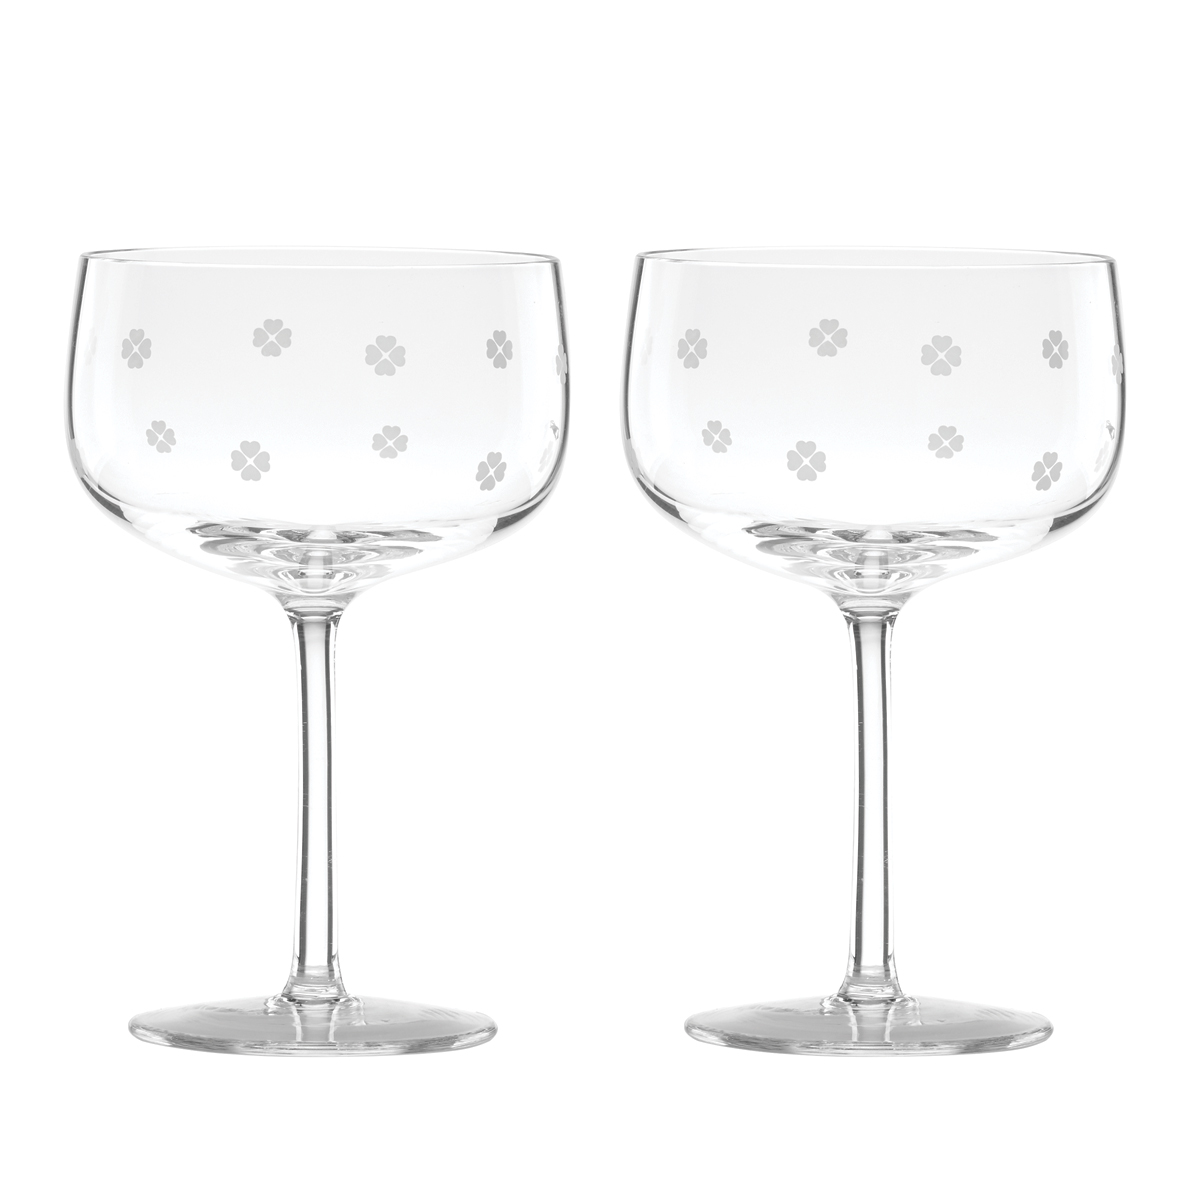 Kate Spade New York, Lenox Spade Clover Coupe Glass Pair